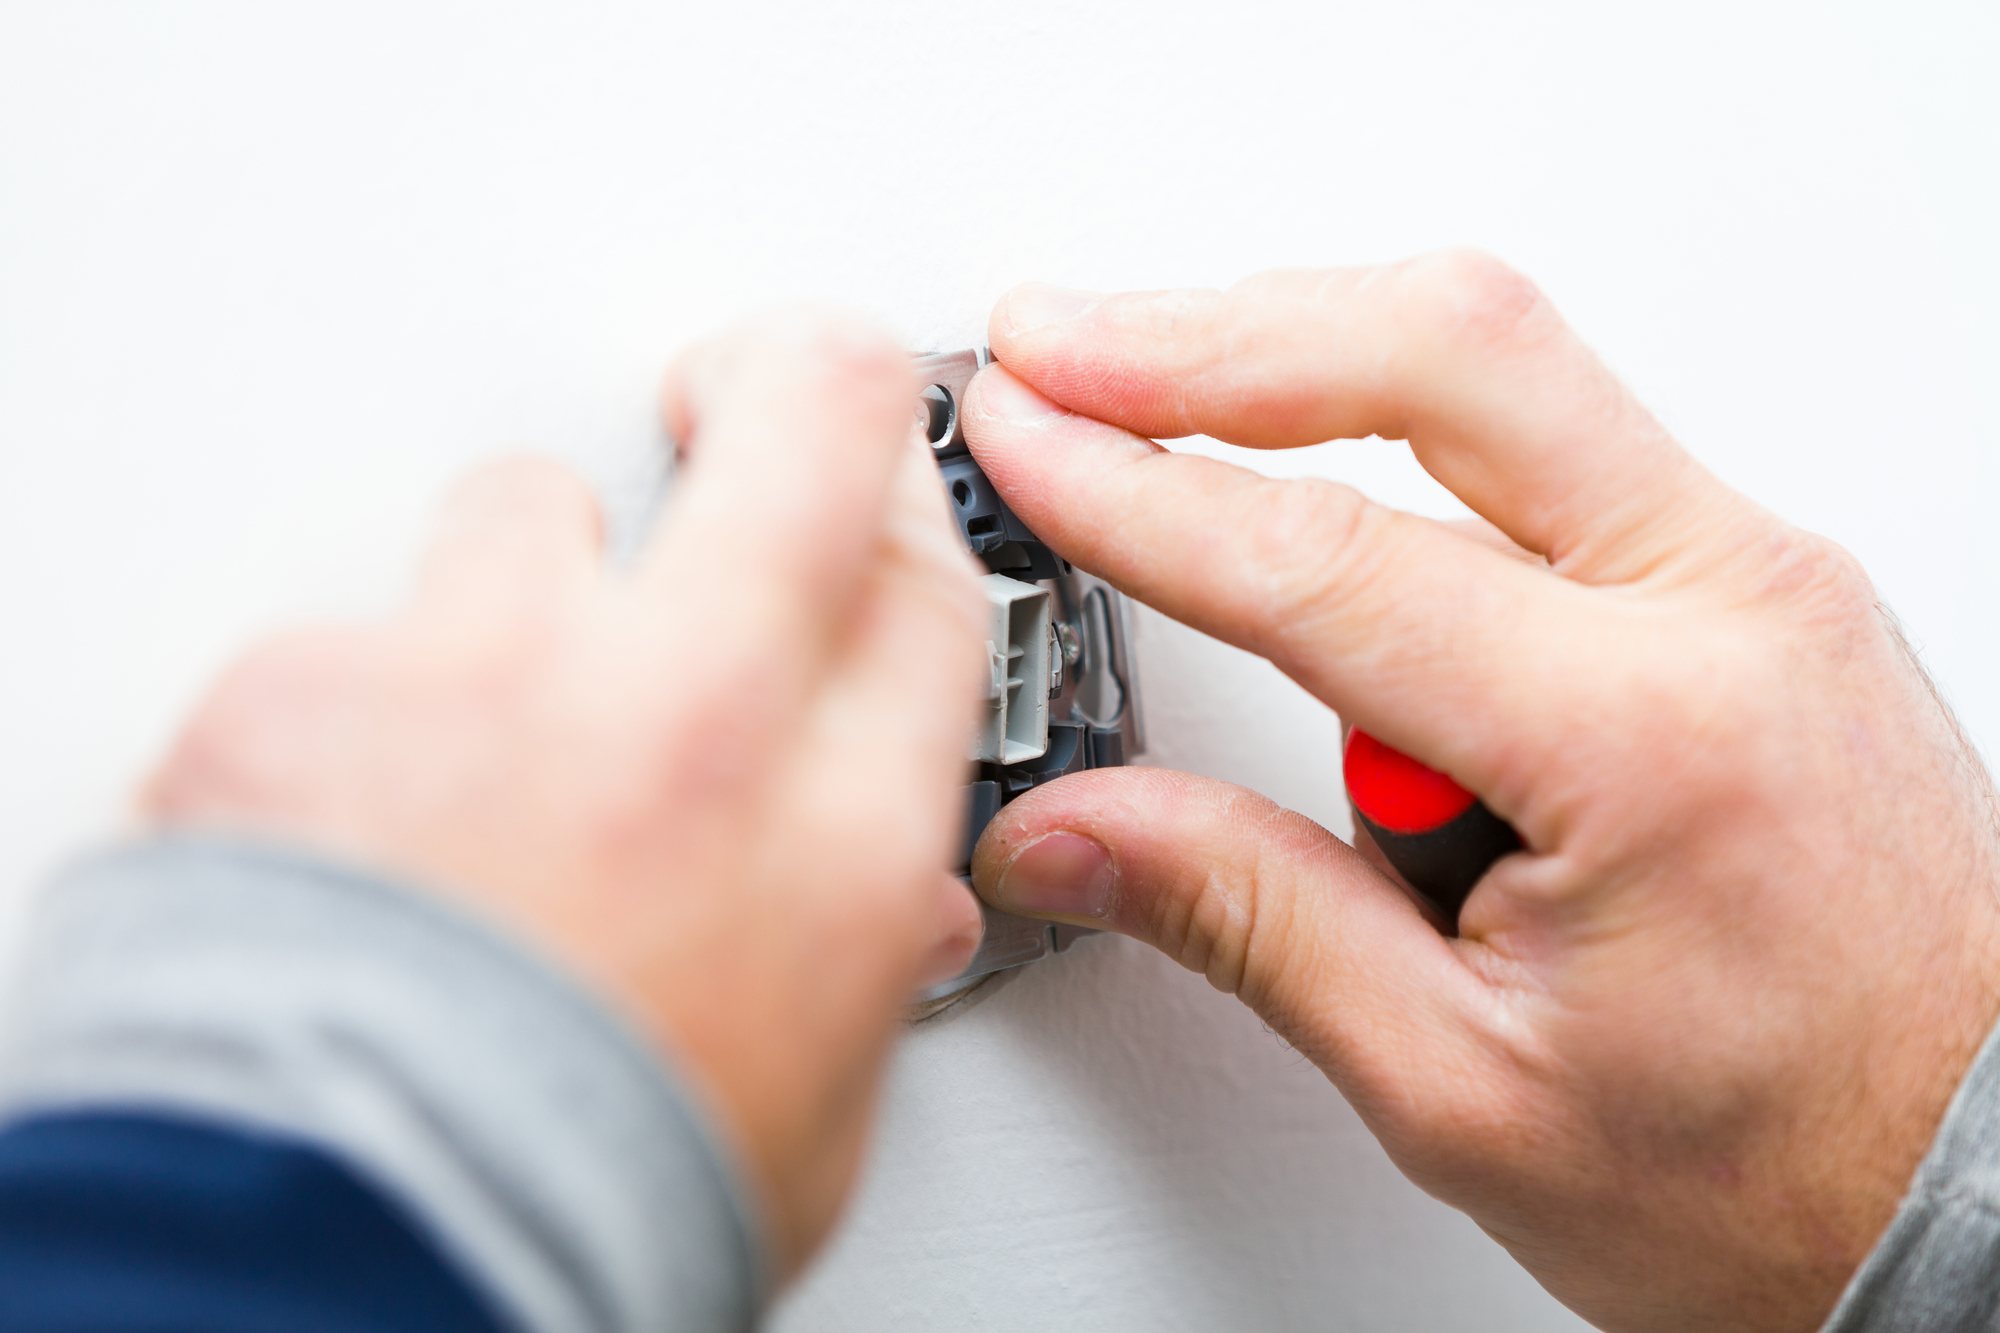 Electrician installing light on a wall using special tools.